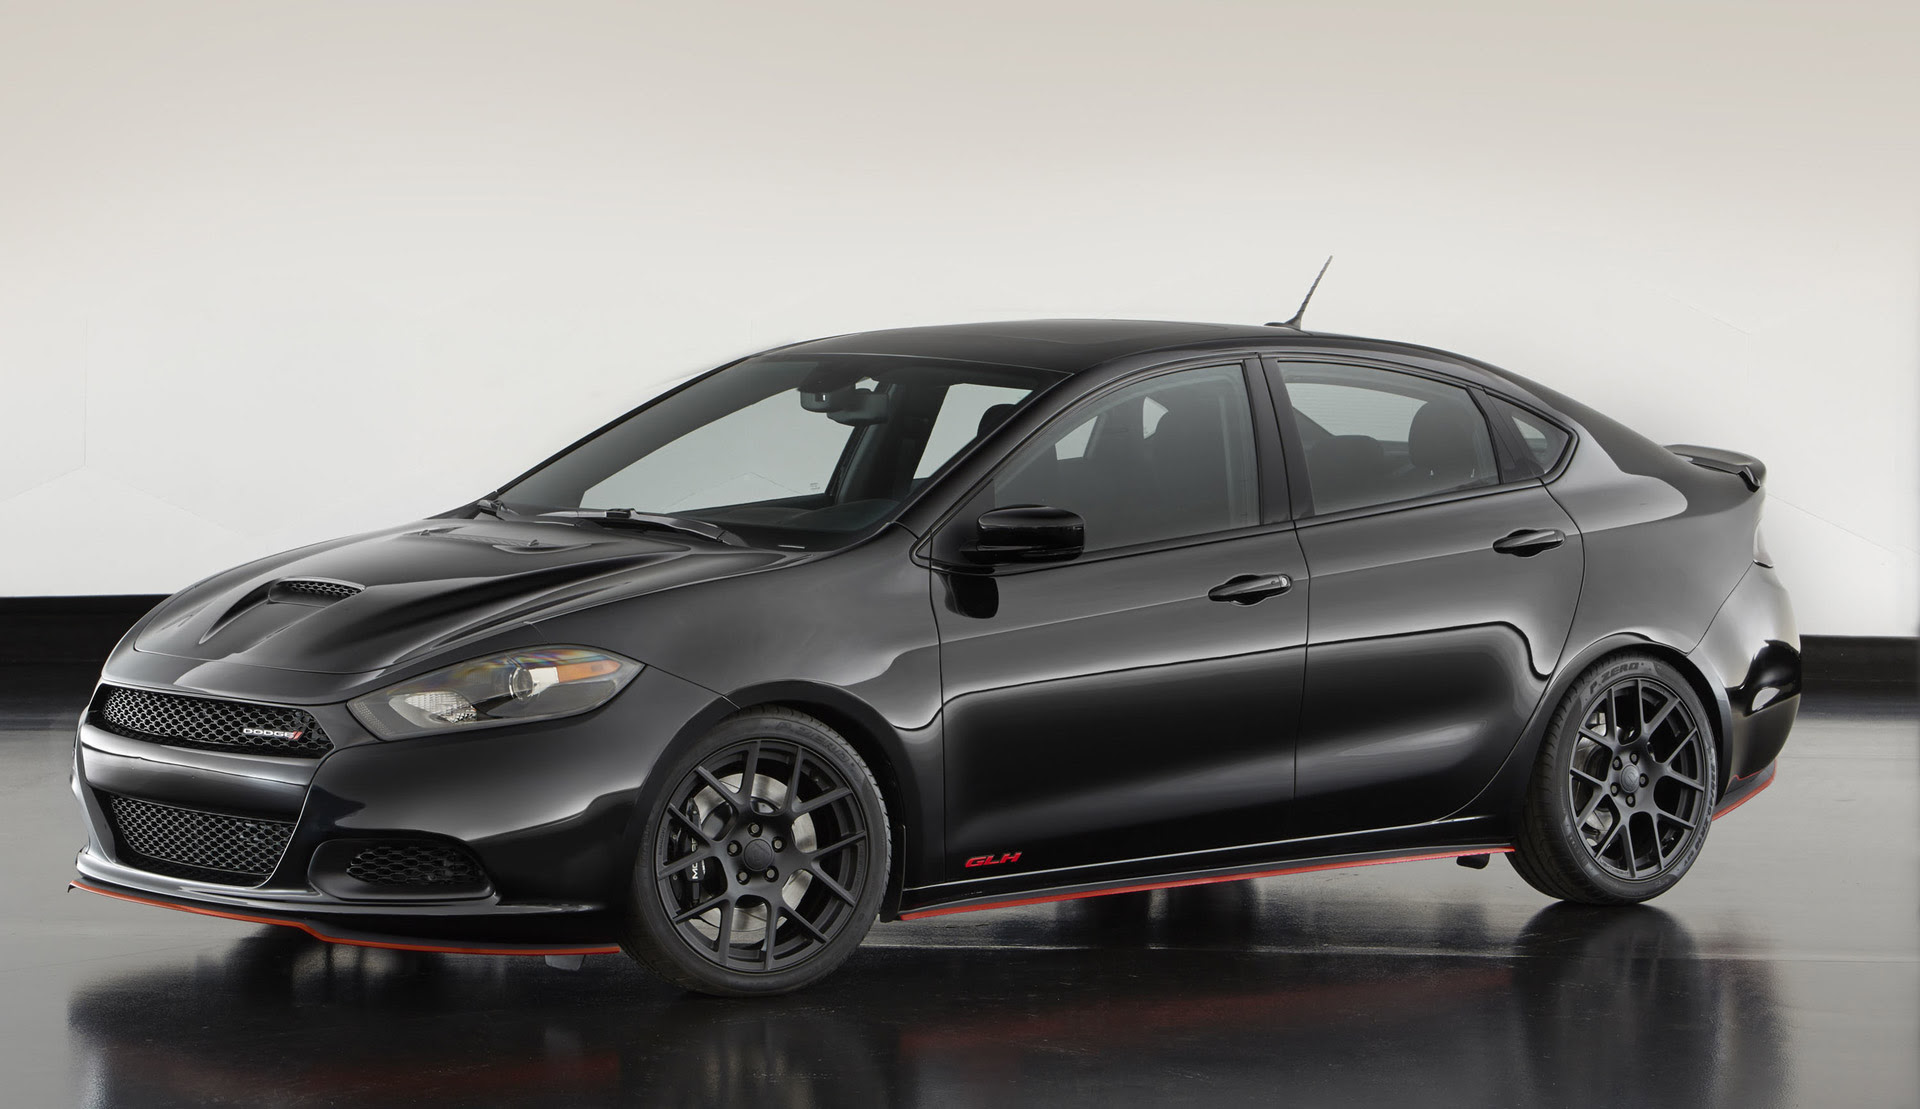 Dodge Dart GLH Concept Revealed, Production Version Rumored